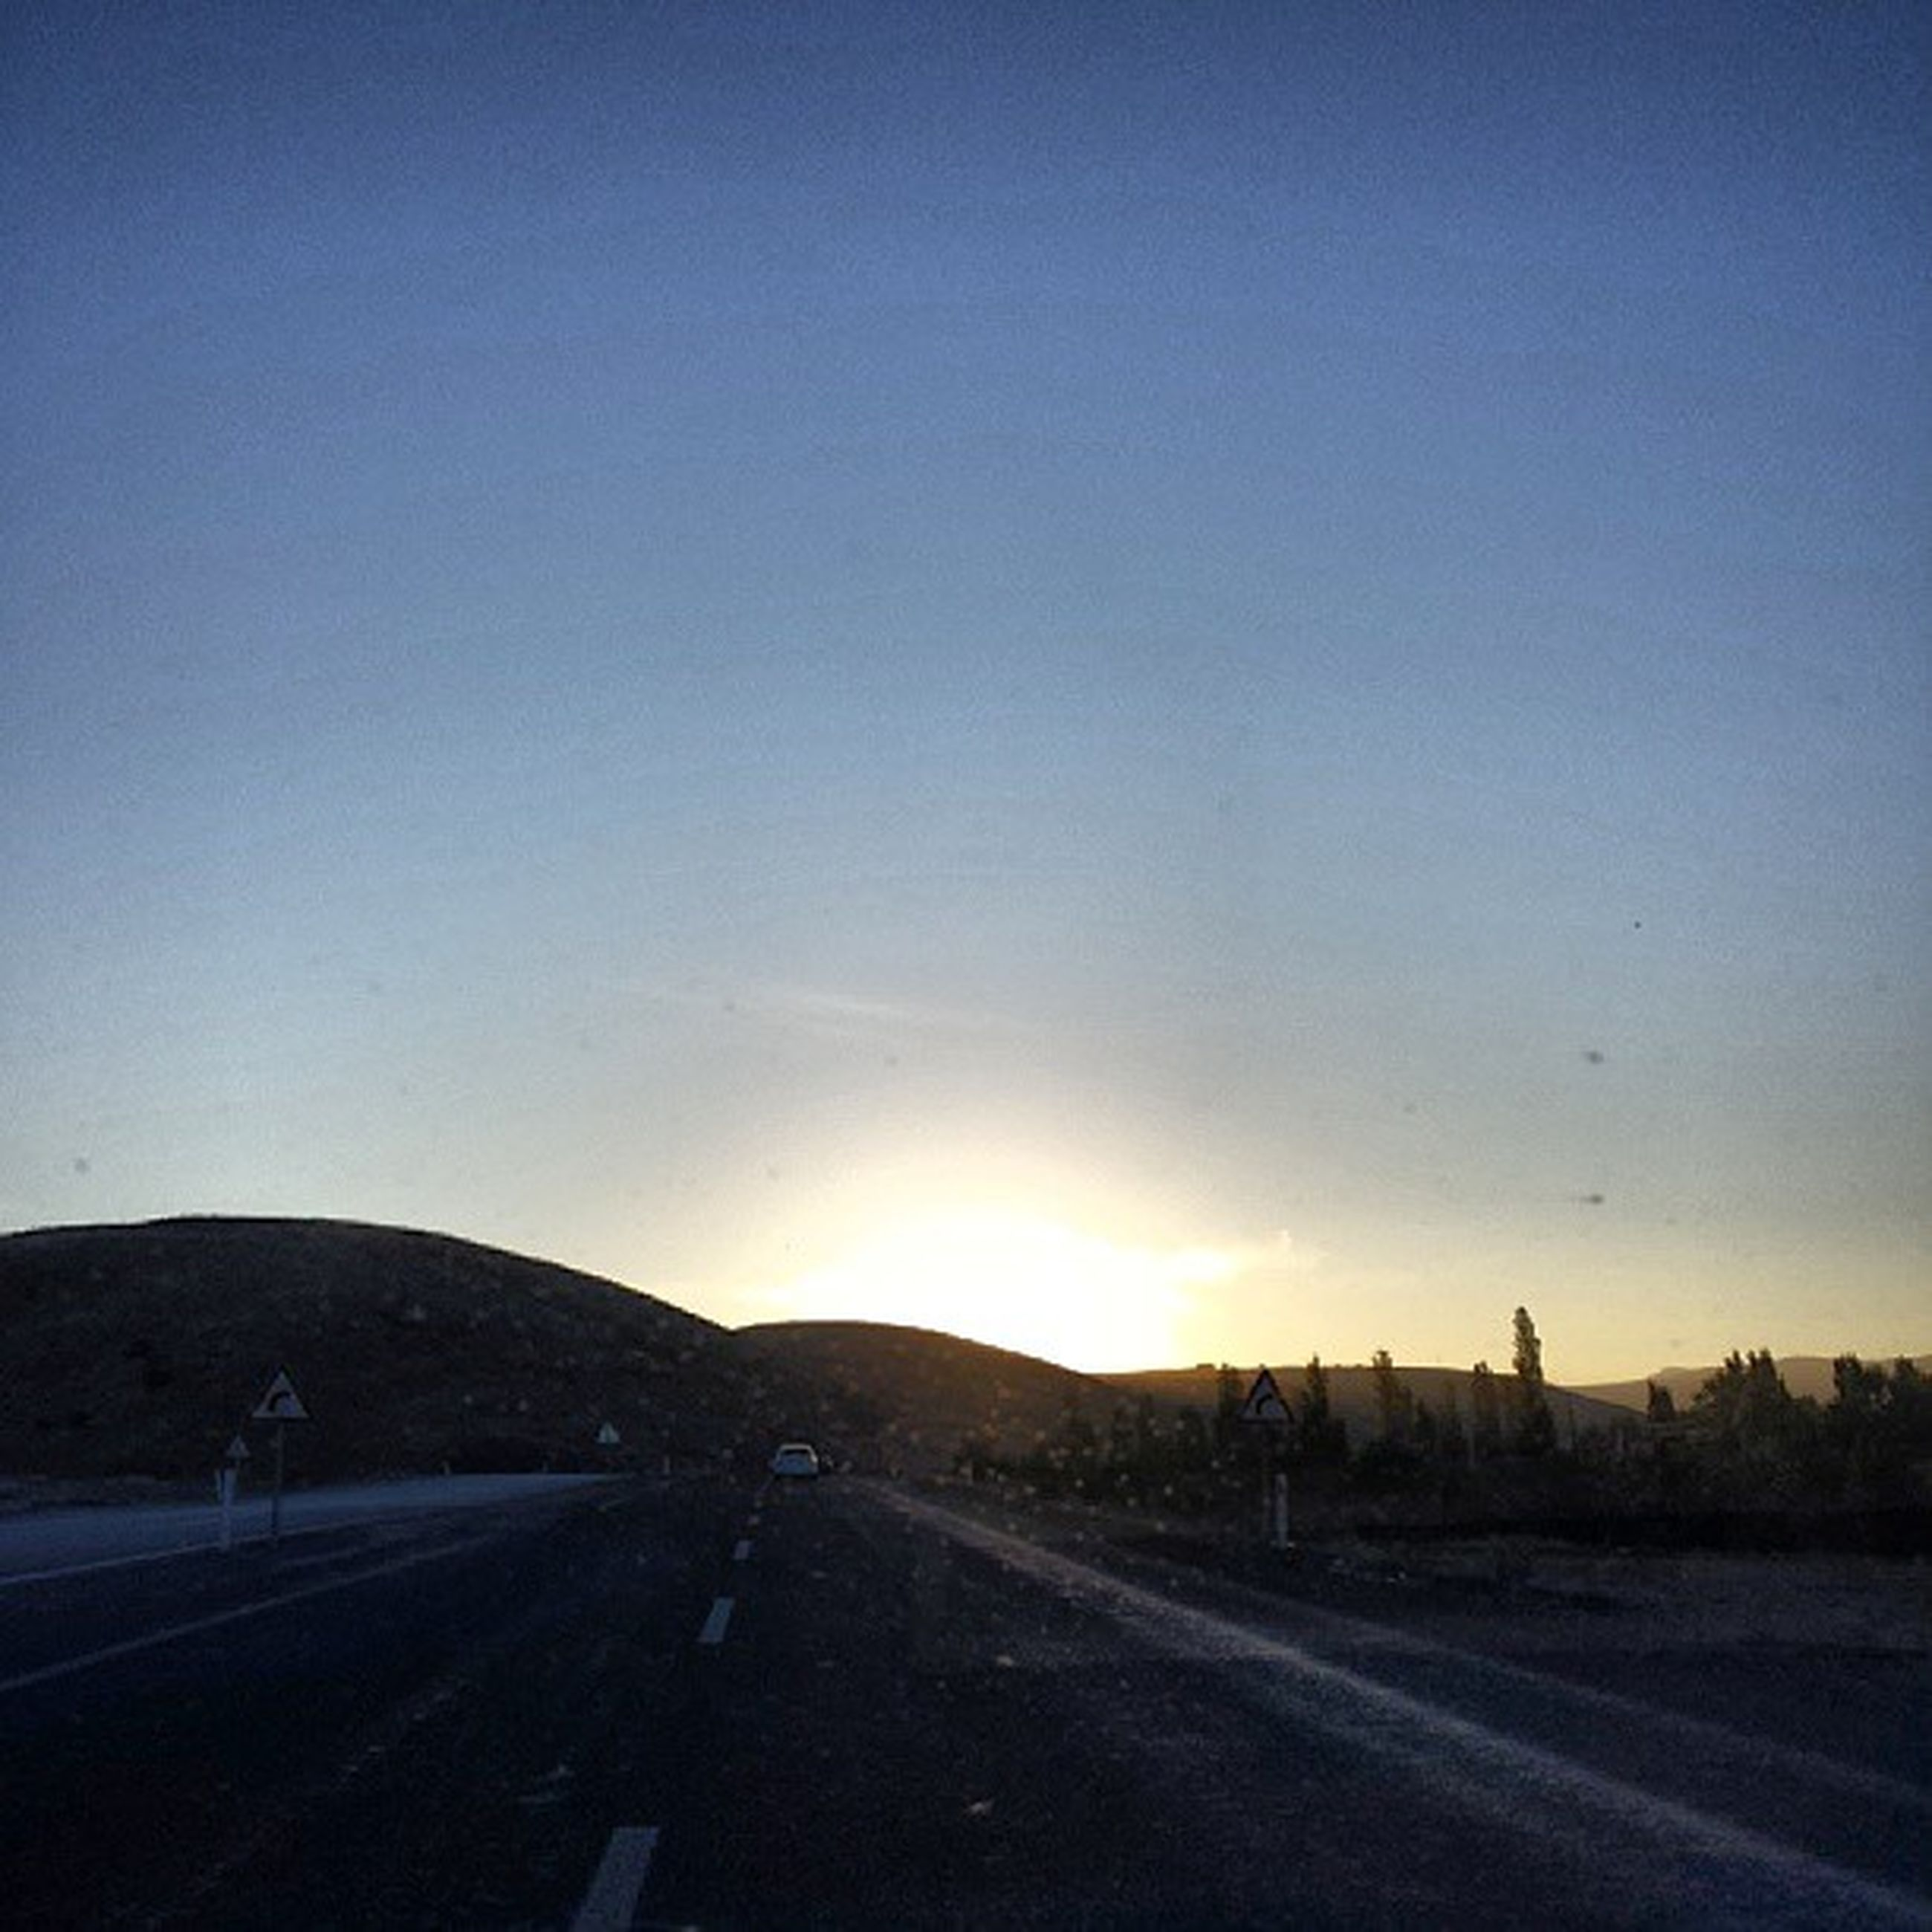 road, the way forward, transportation, road marking, copy space, clear sky, diminishing perspective, vanishing point, sunset, sky, street, country road, blue, empty, empty road, car, landscape, tranquility, tranquil scene, asphalt